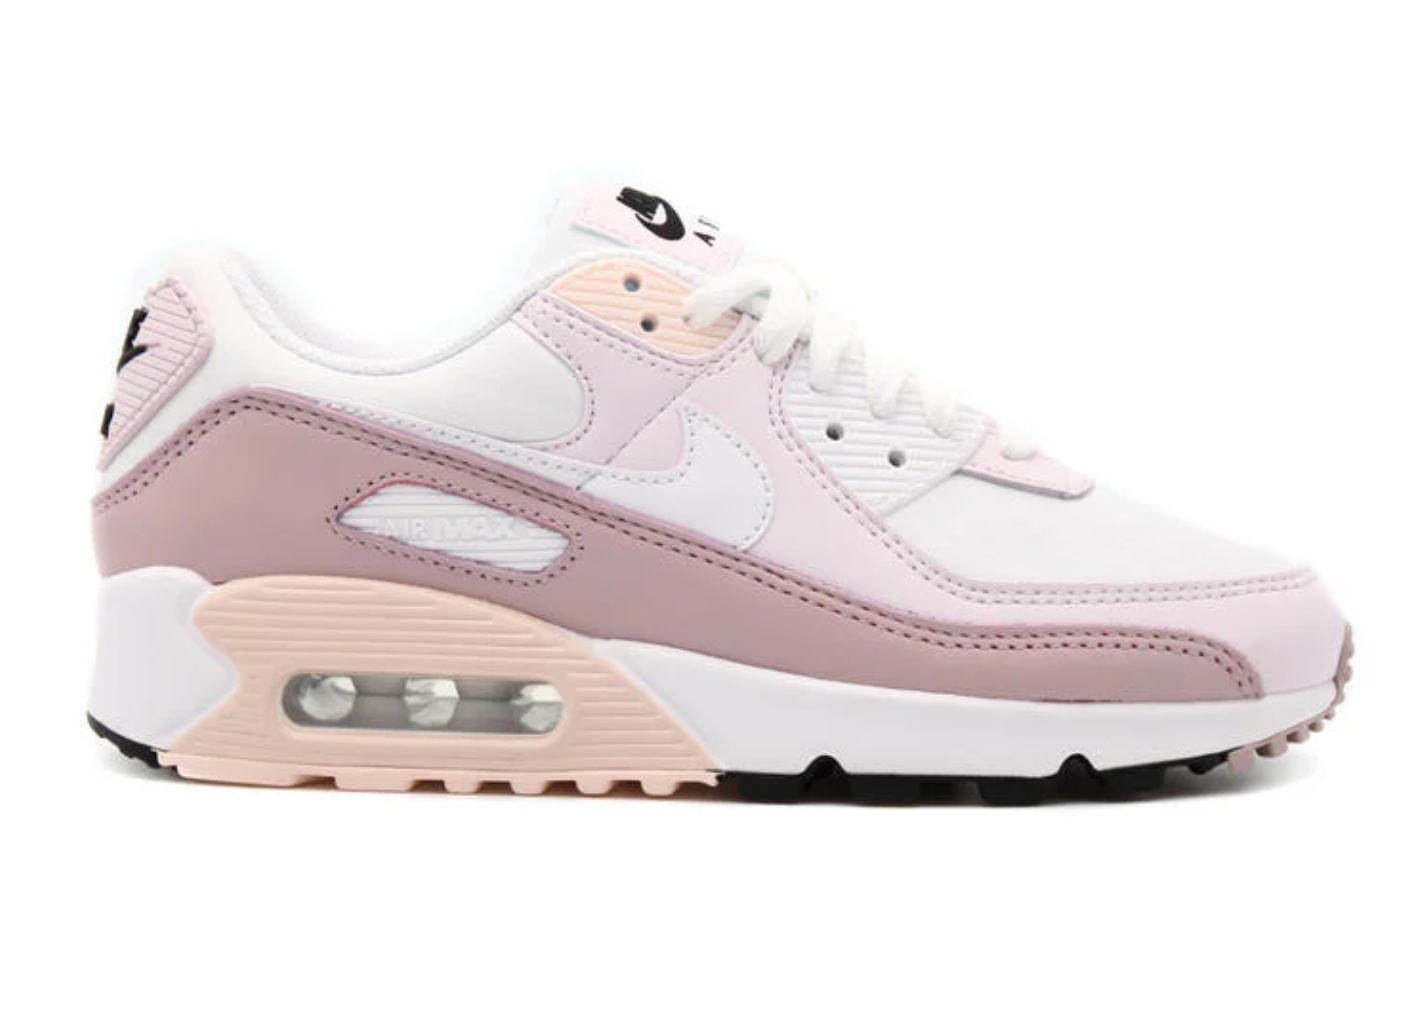 Nike Air Max 90 Light Violet Champagne (W)